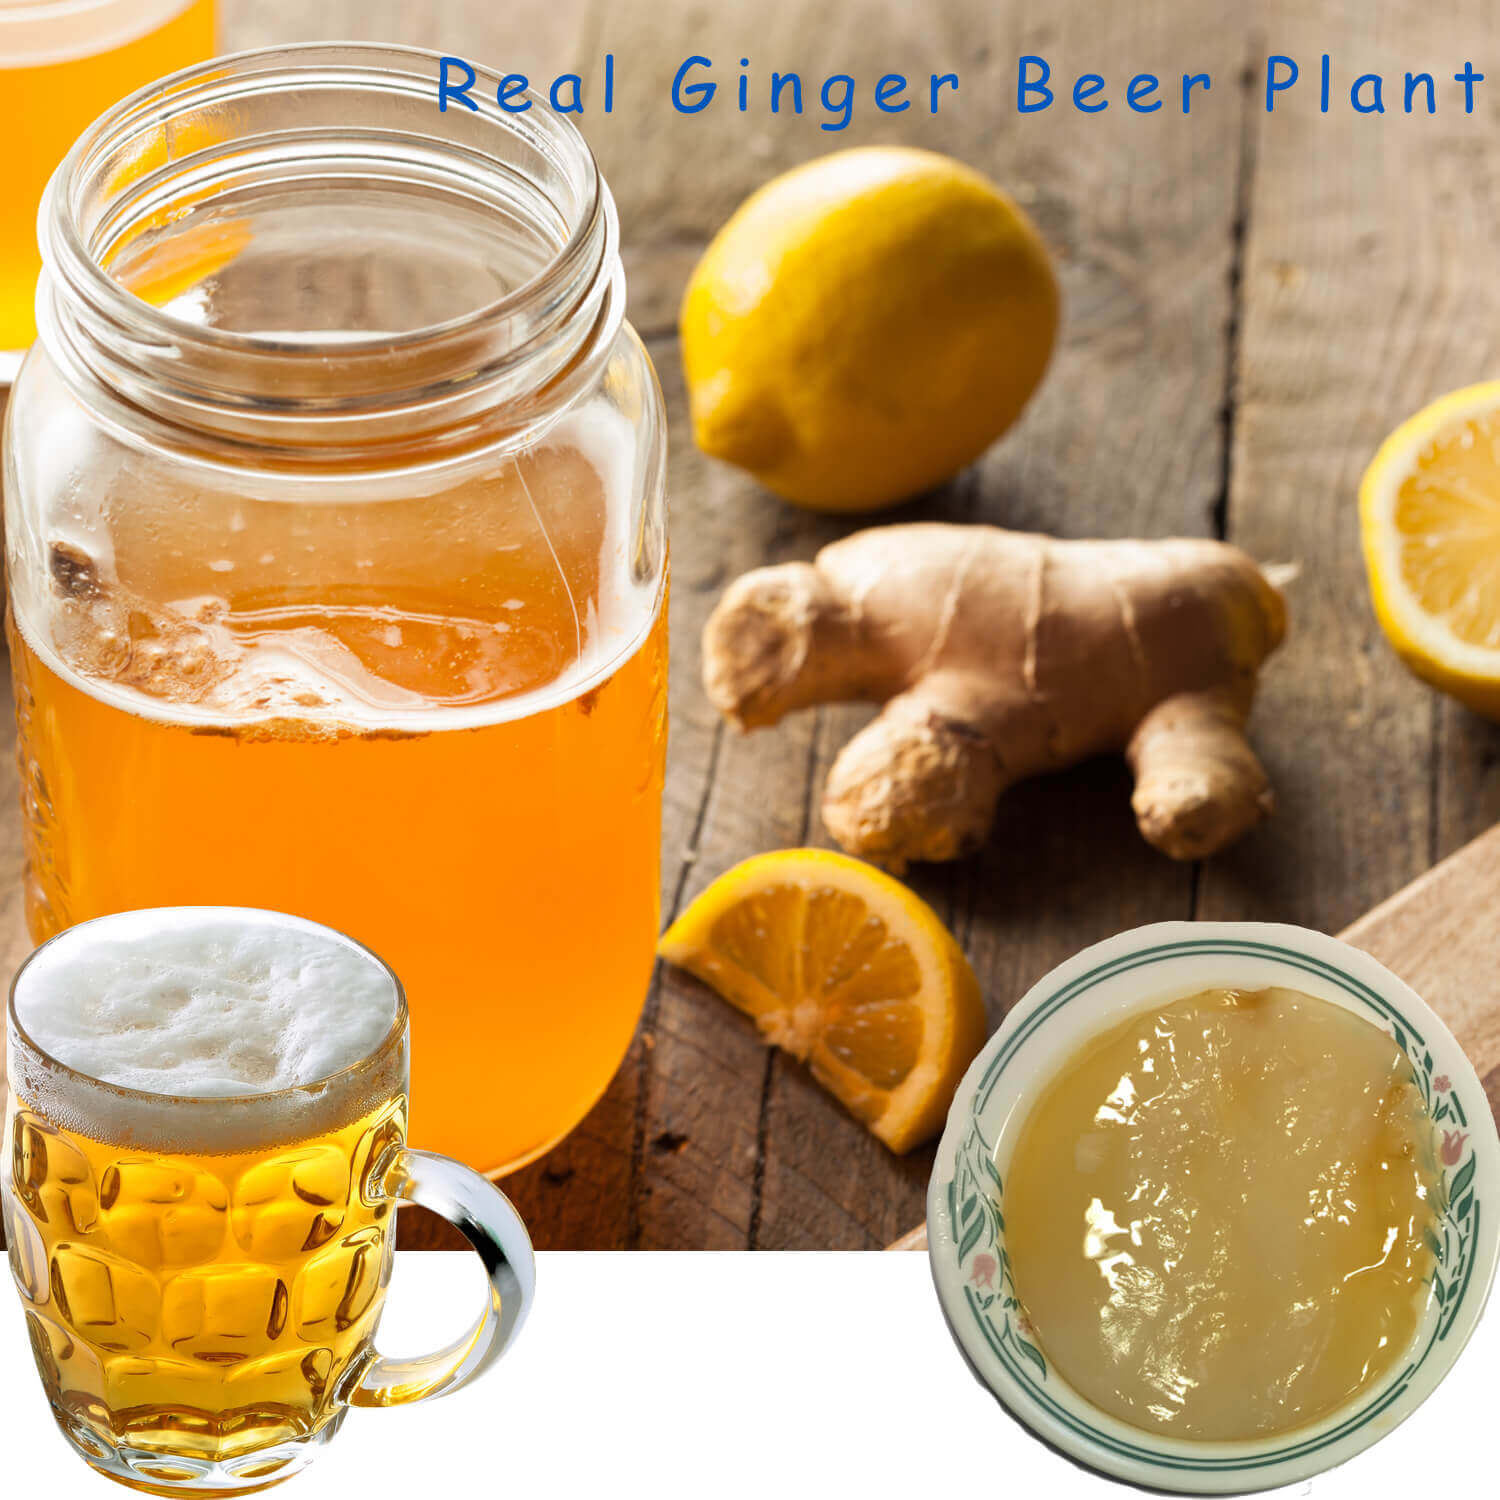 real-ginger-beer-plant-by-happyherbalist.jpg